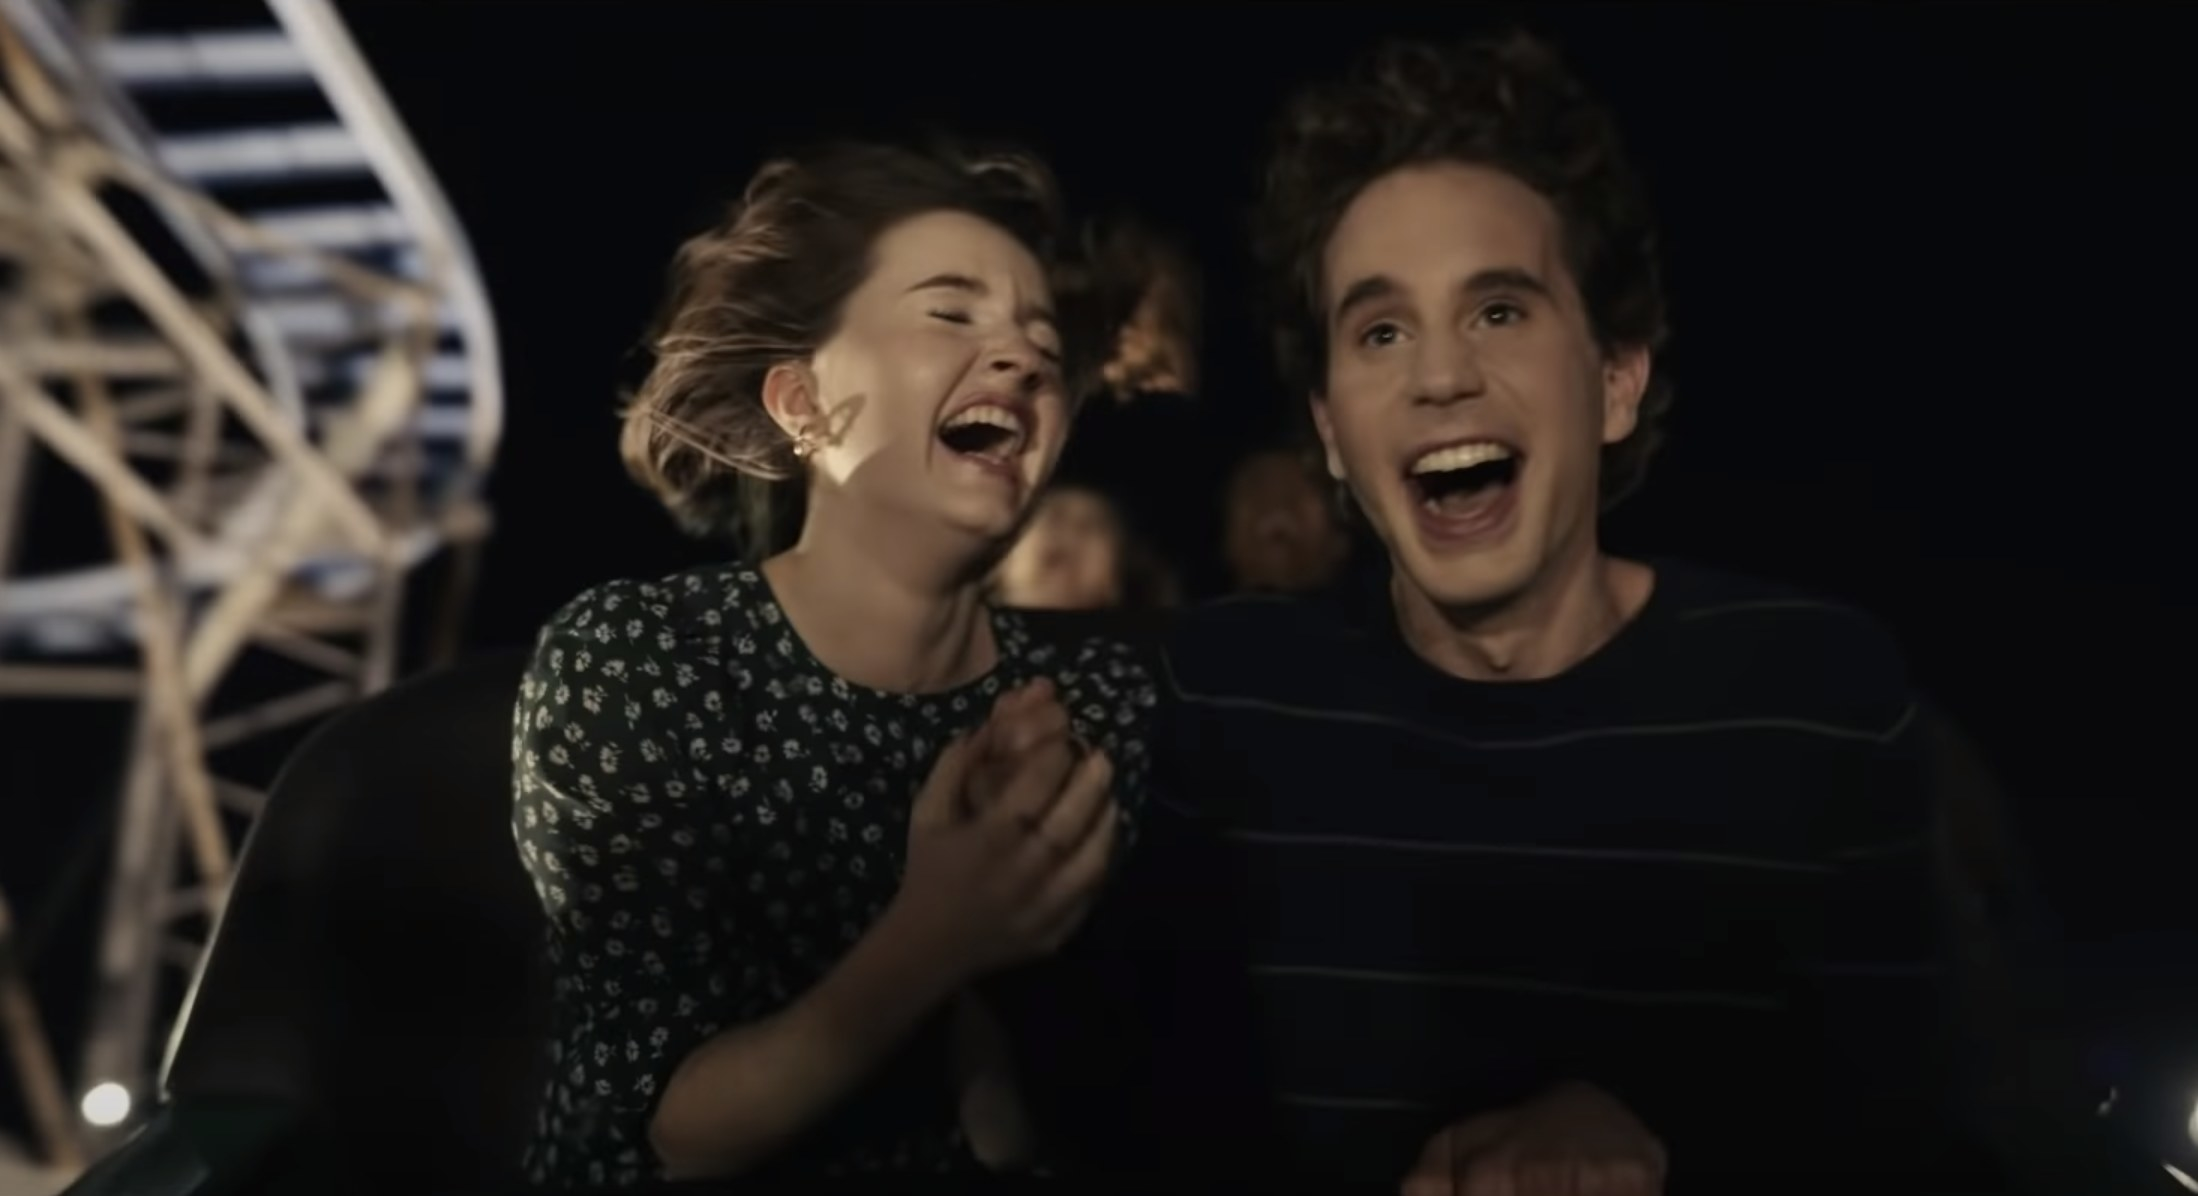 Ben and Kaitlyn ride a rollercoaster in the movie